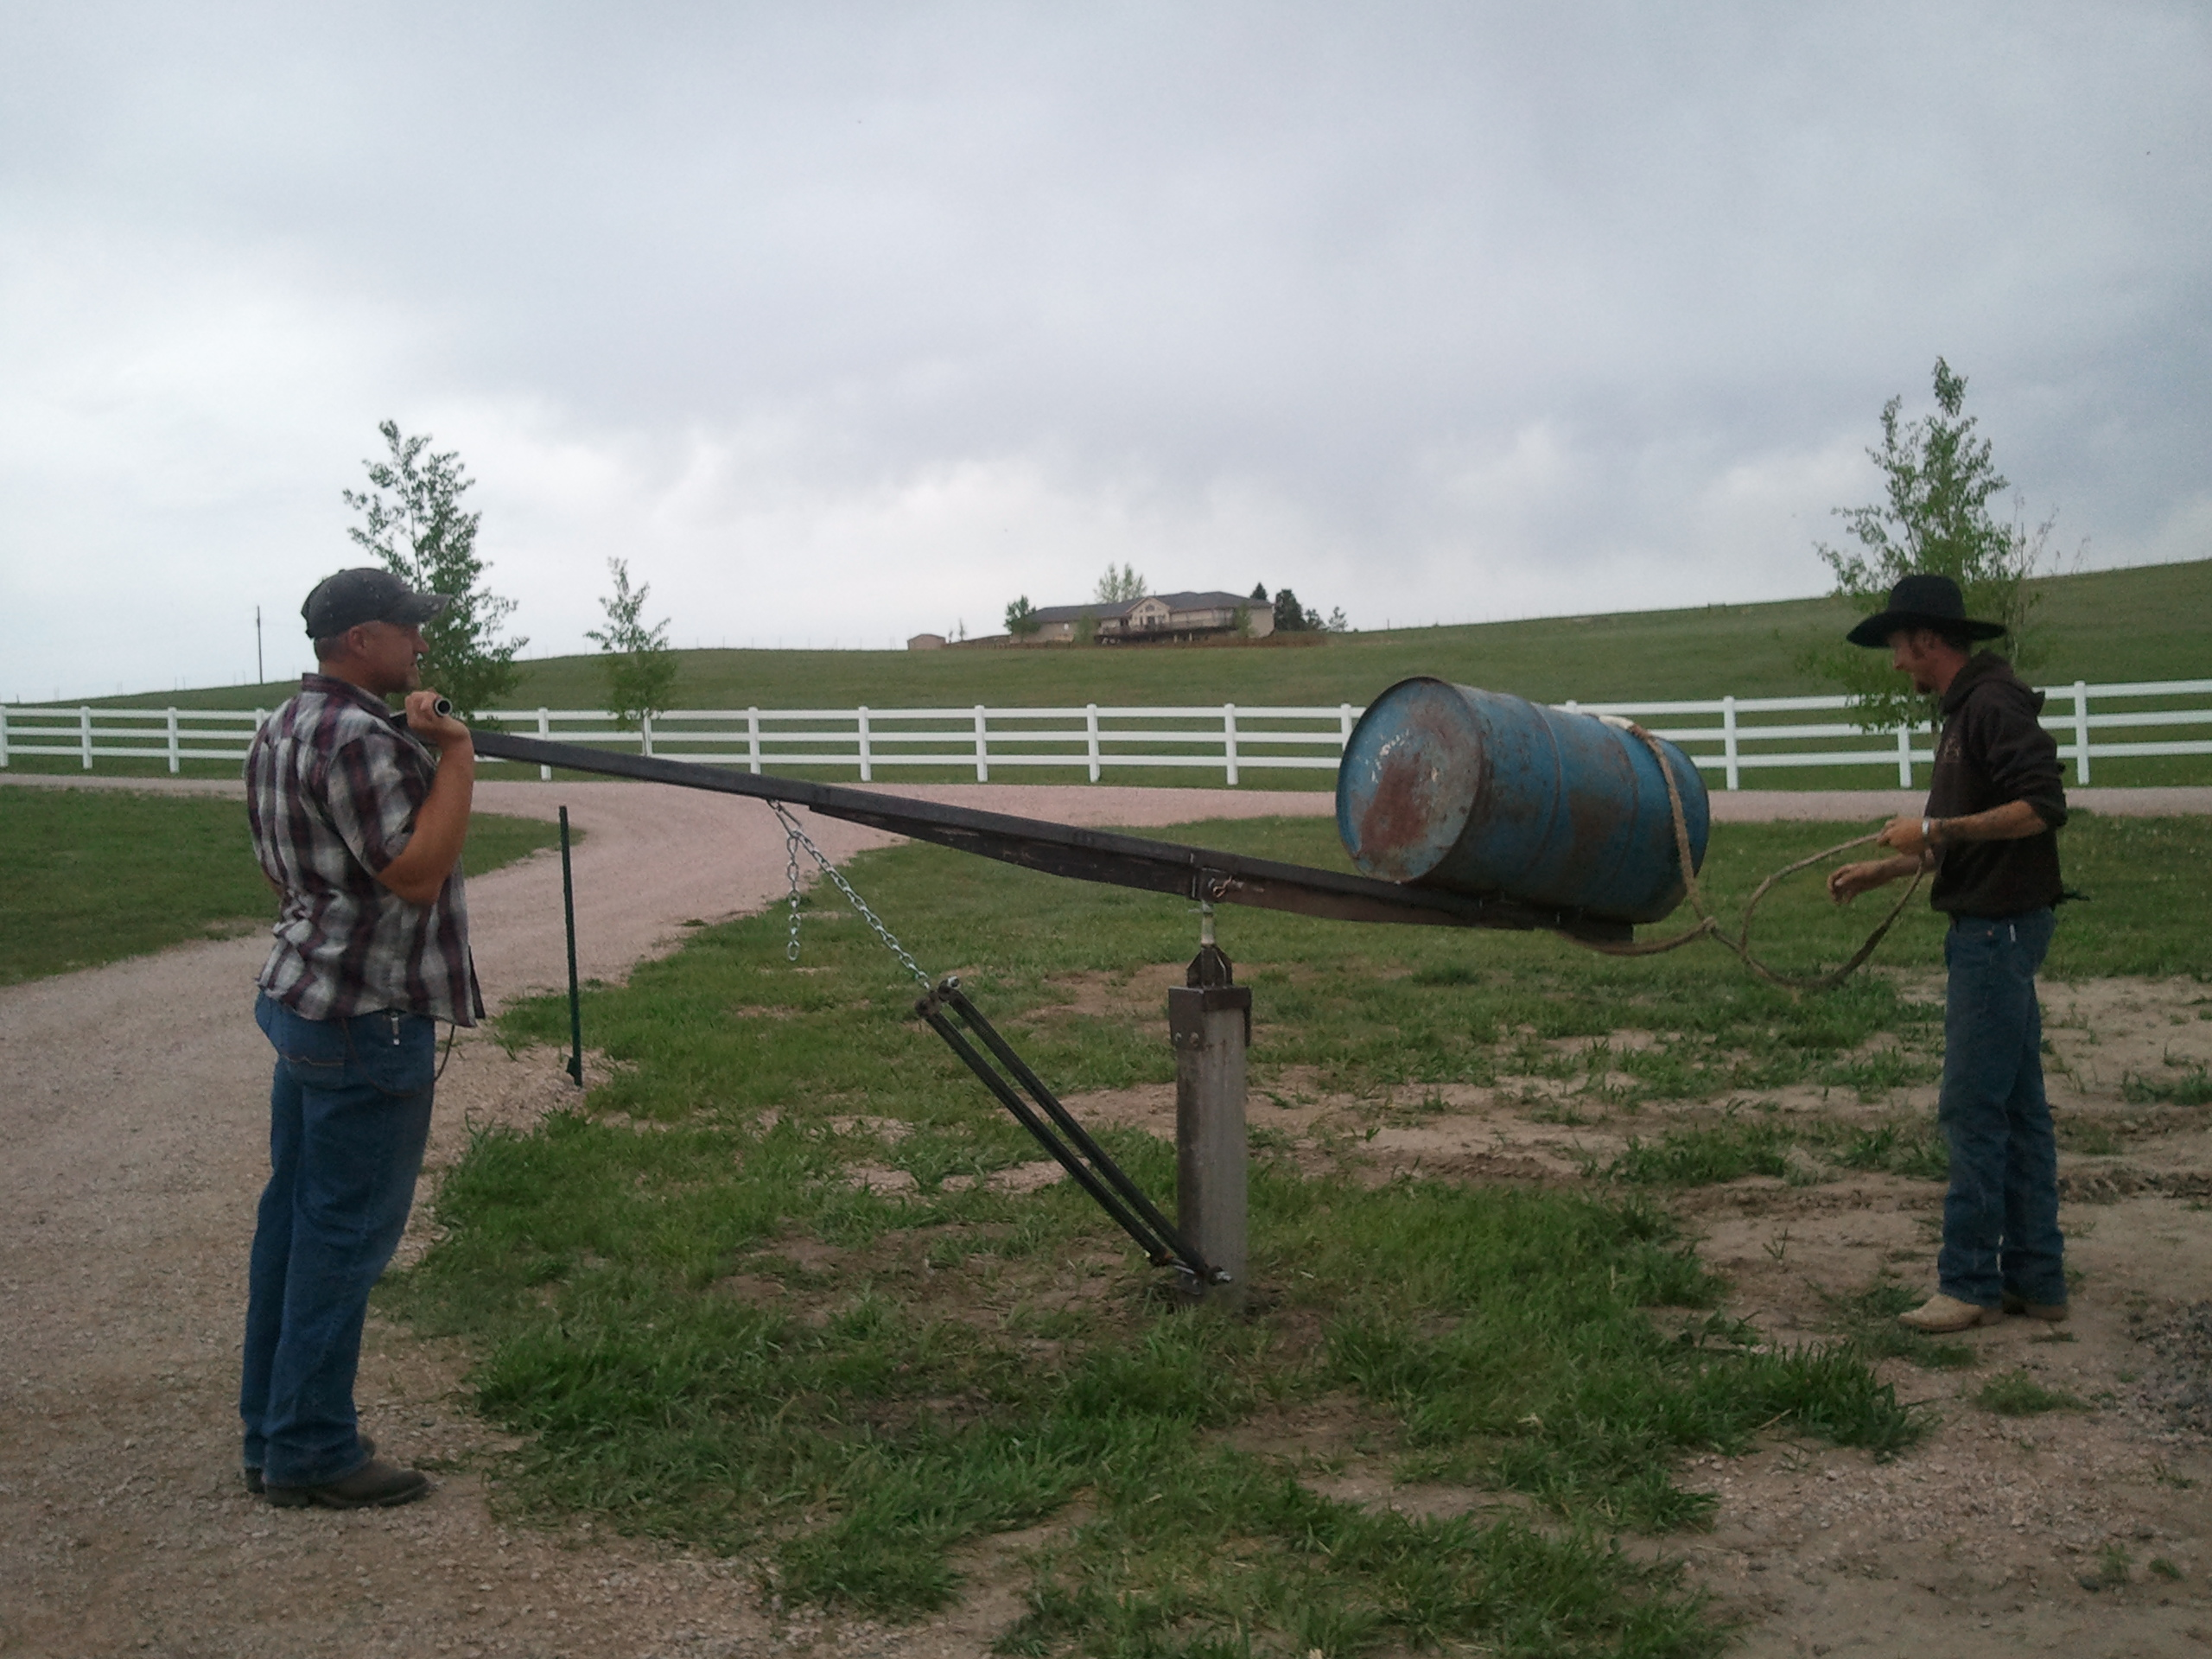 Bucking Barrel